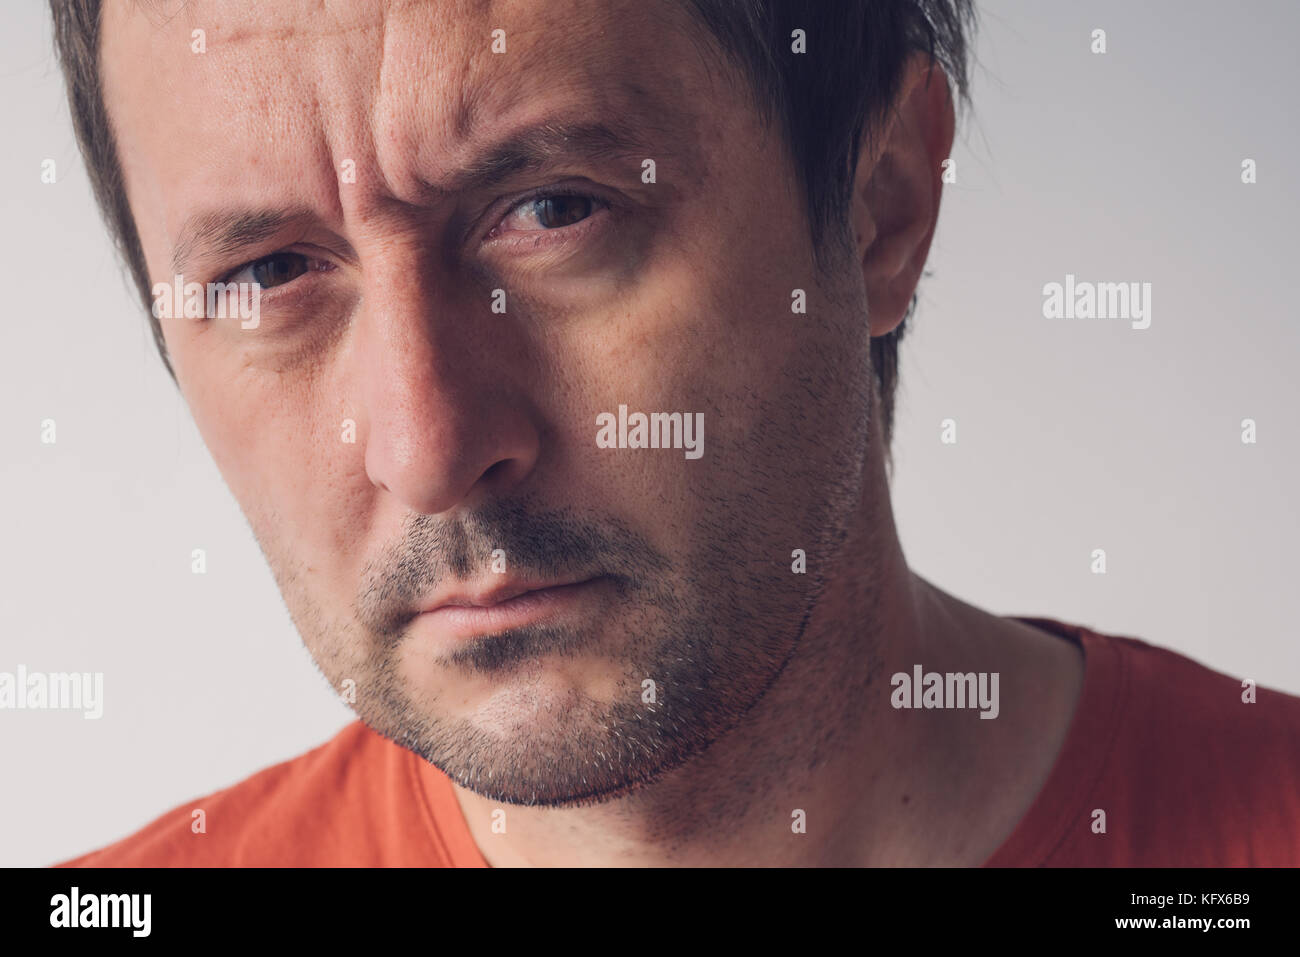 Serious portrait of adult caucasian man looking at camera, real people facial expressions - Stock Image